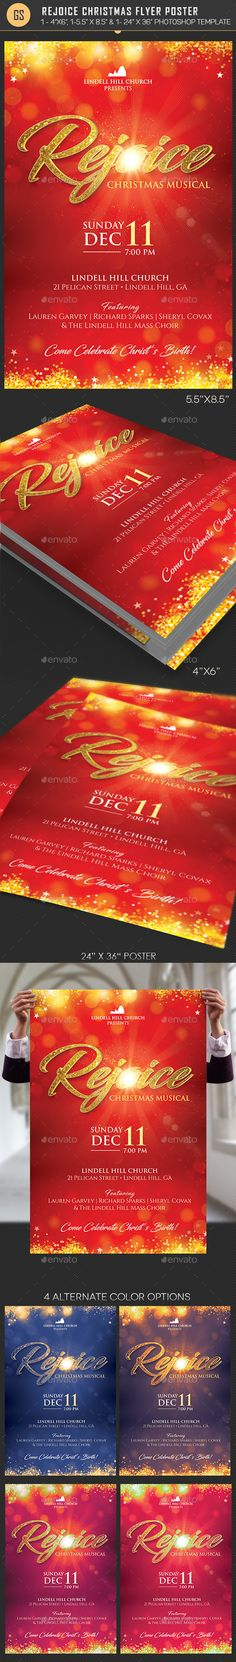 Rejoice Christmas Flyer Poster Template - Flyers Print Templates